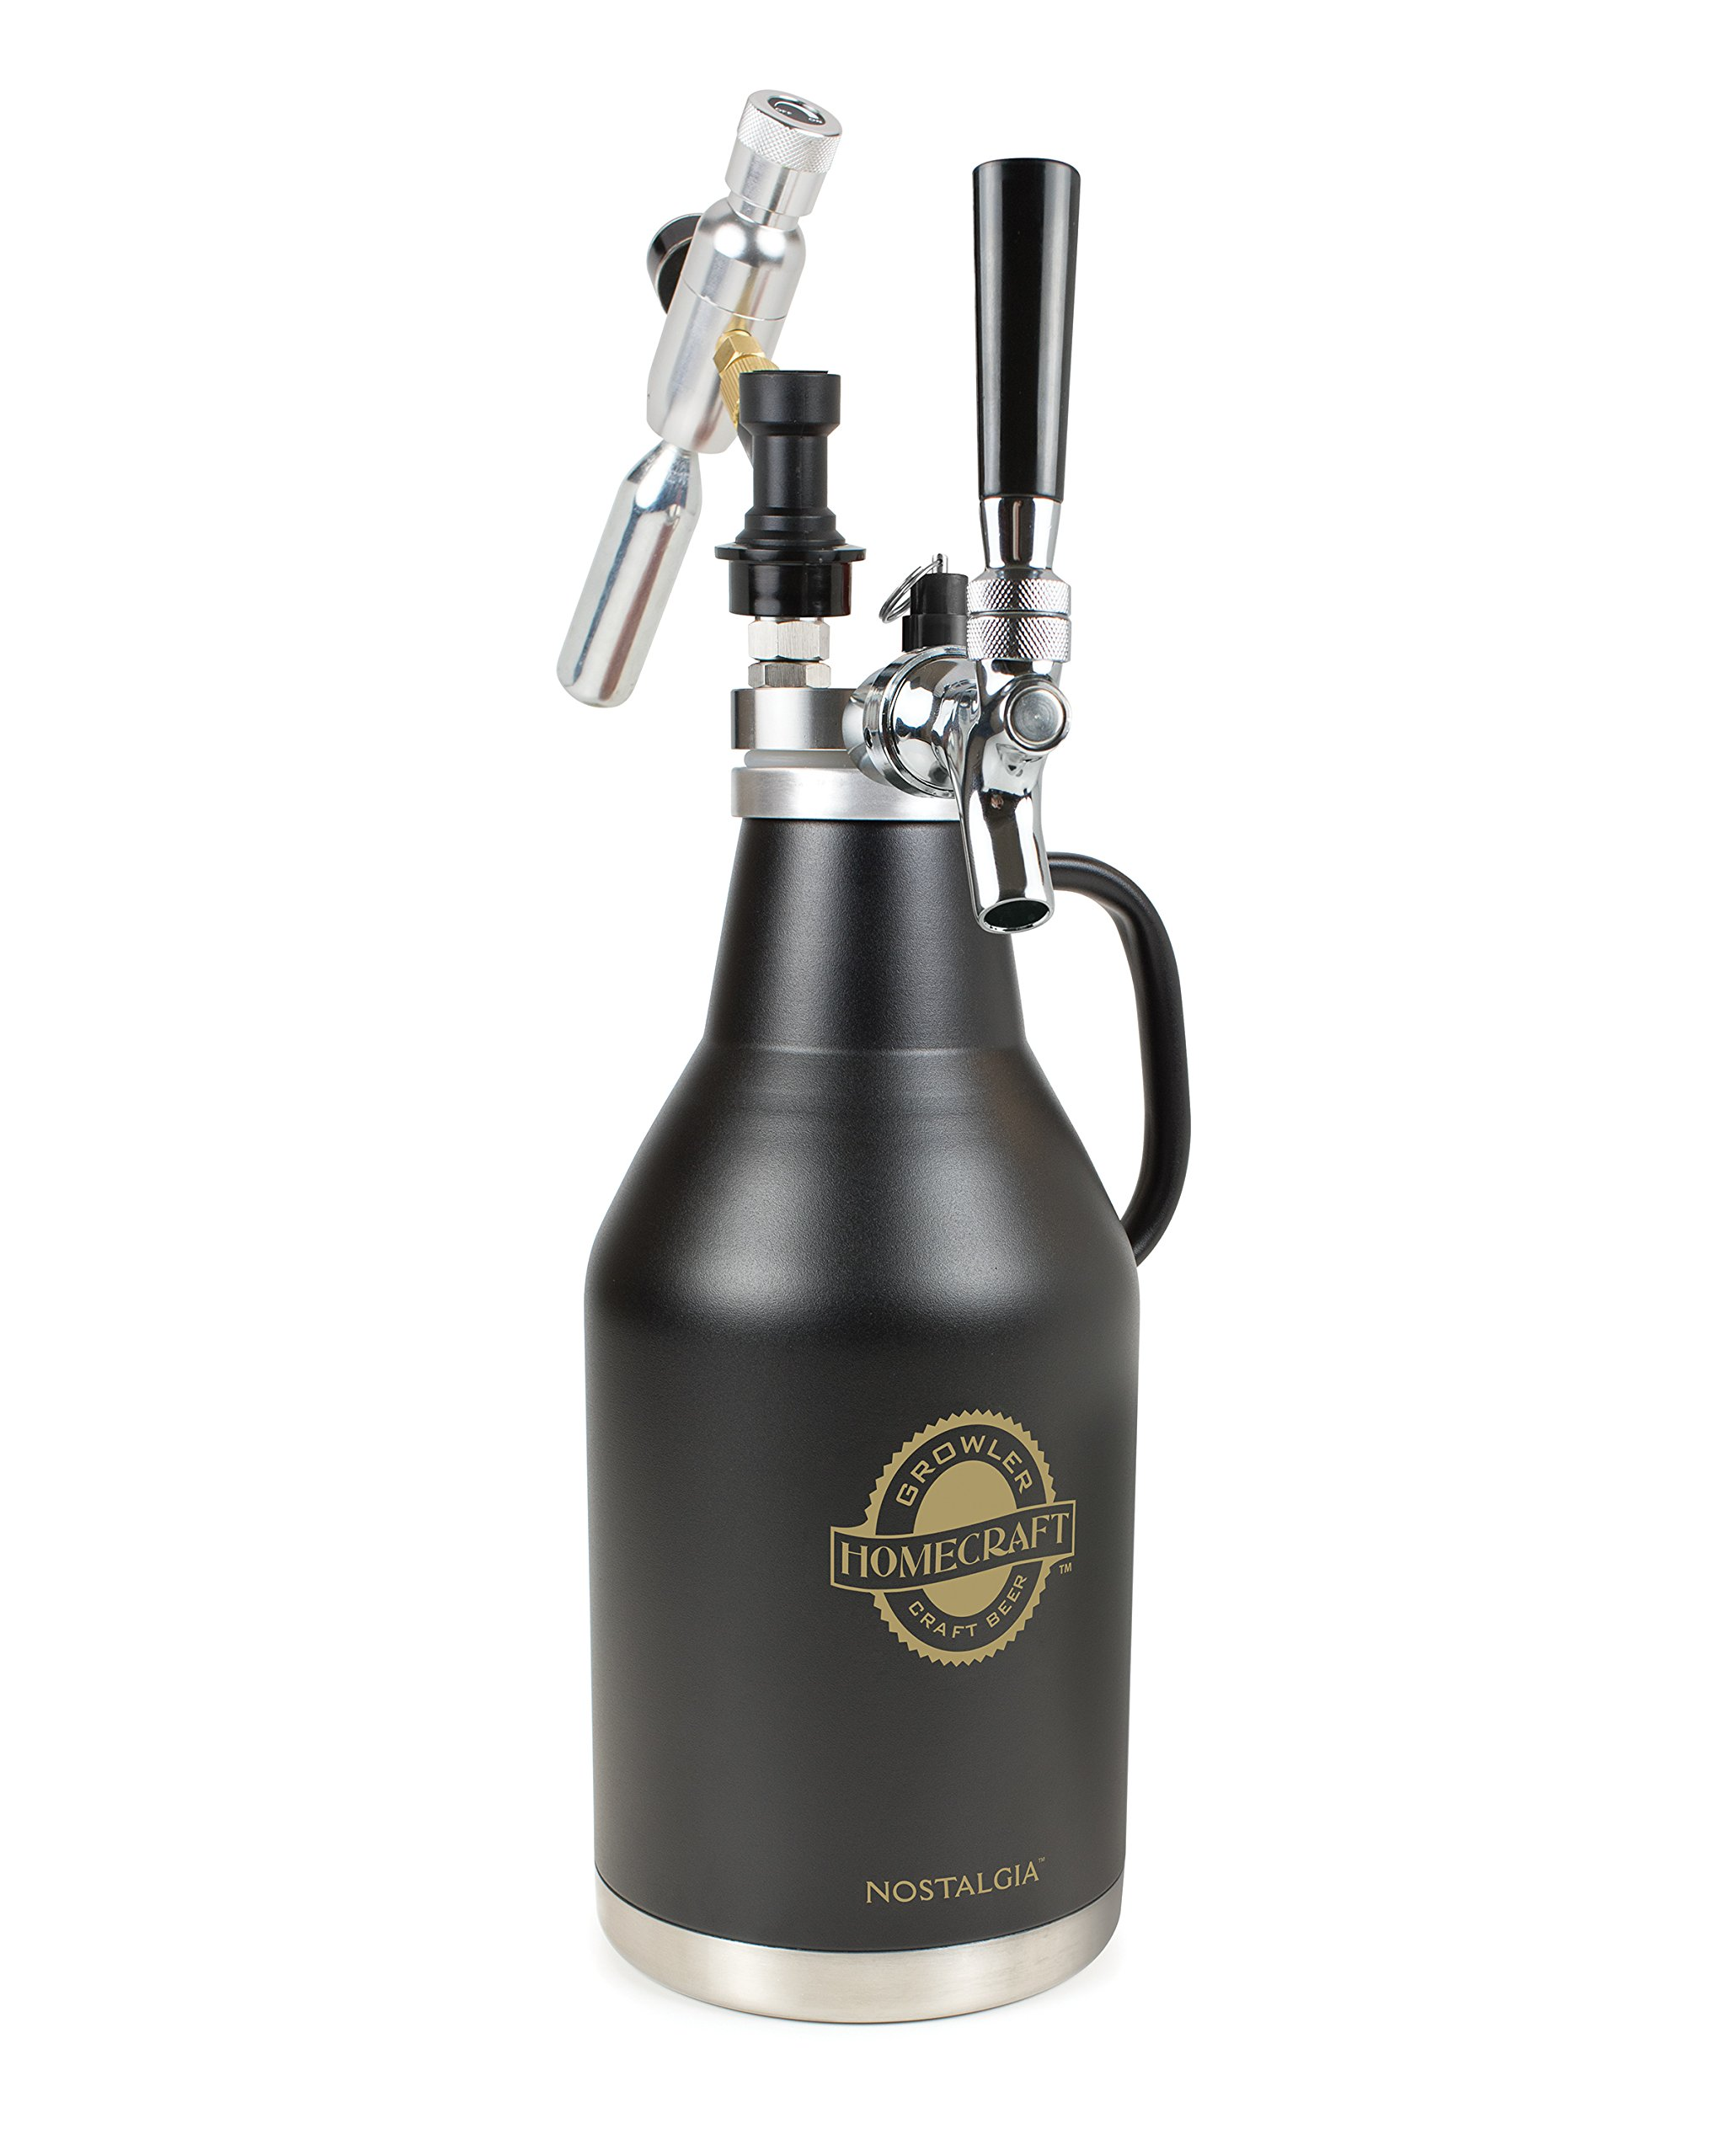 Nostalgia CBG64 Homecraft Beer Growler